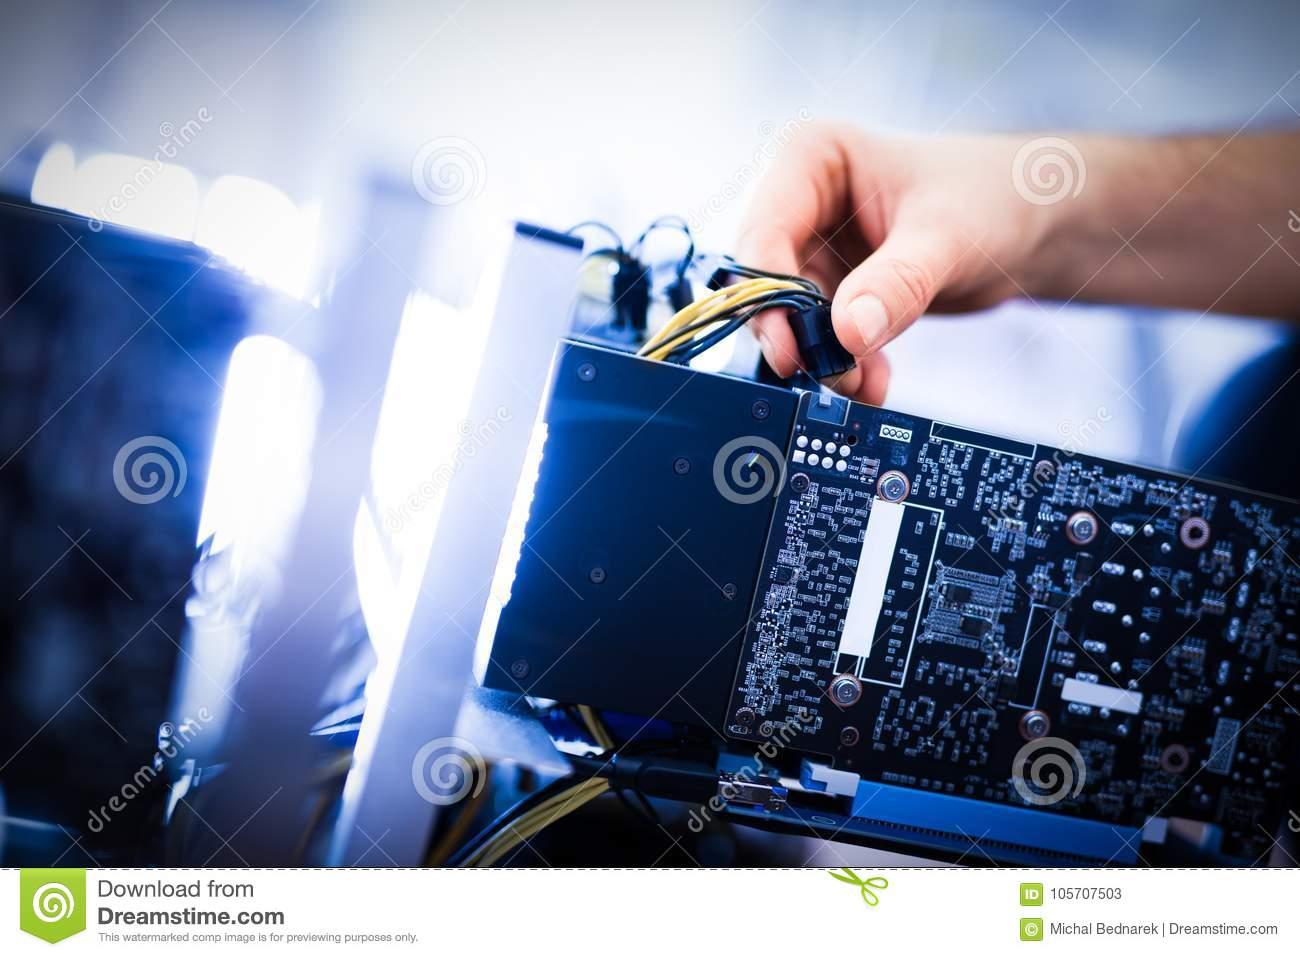 Man`s hand plugging a wire in an input.